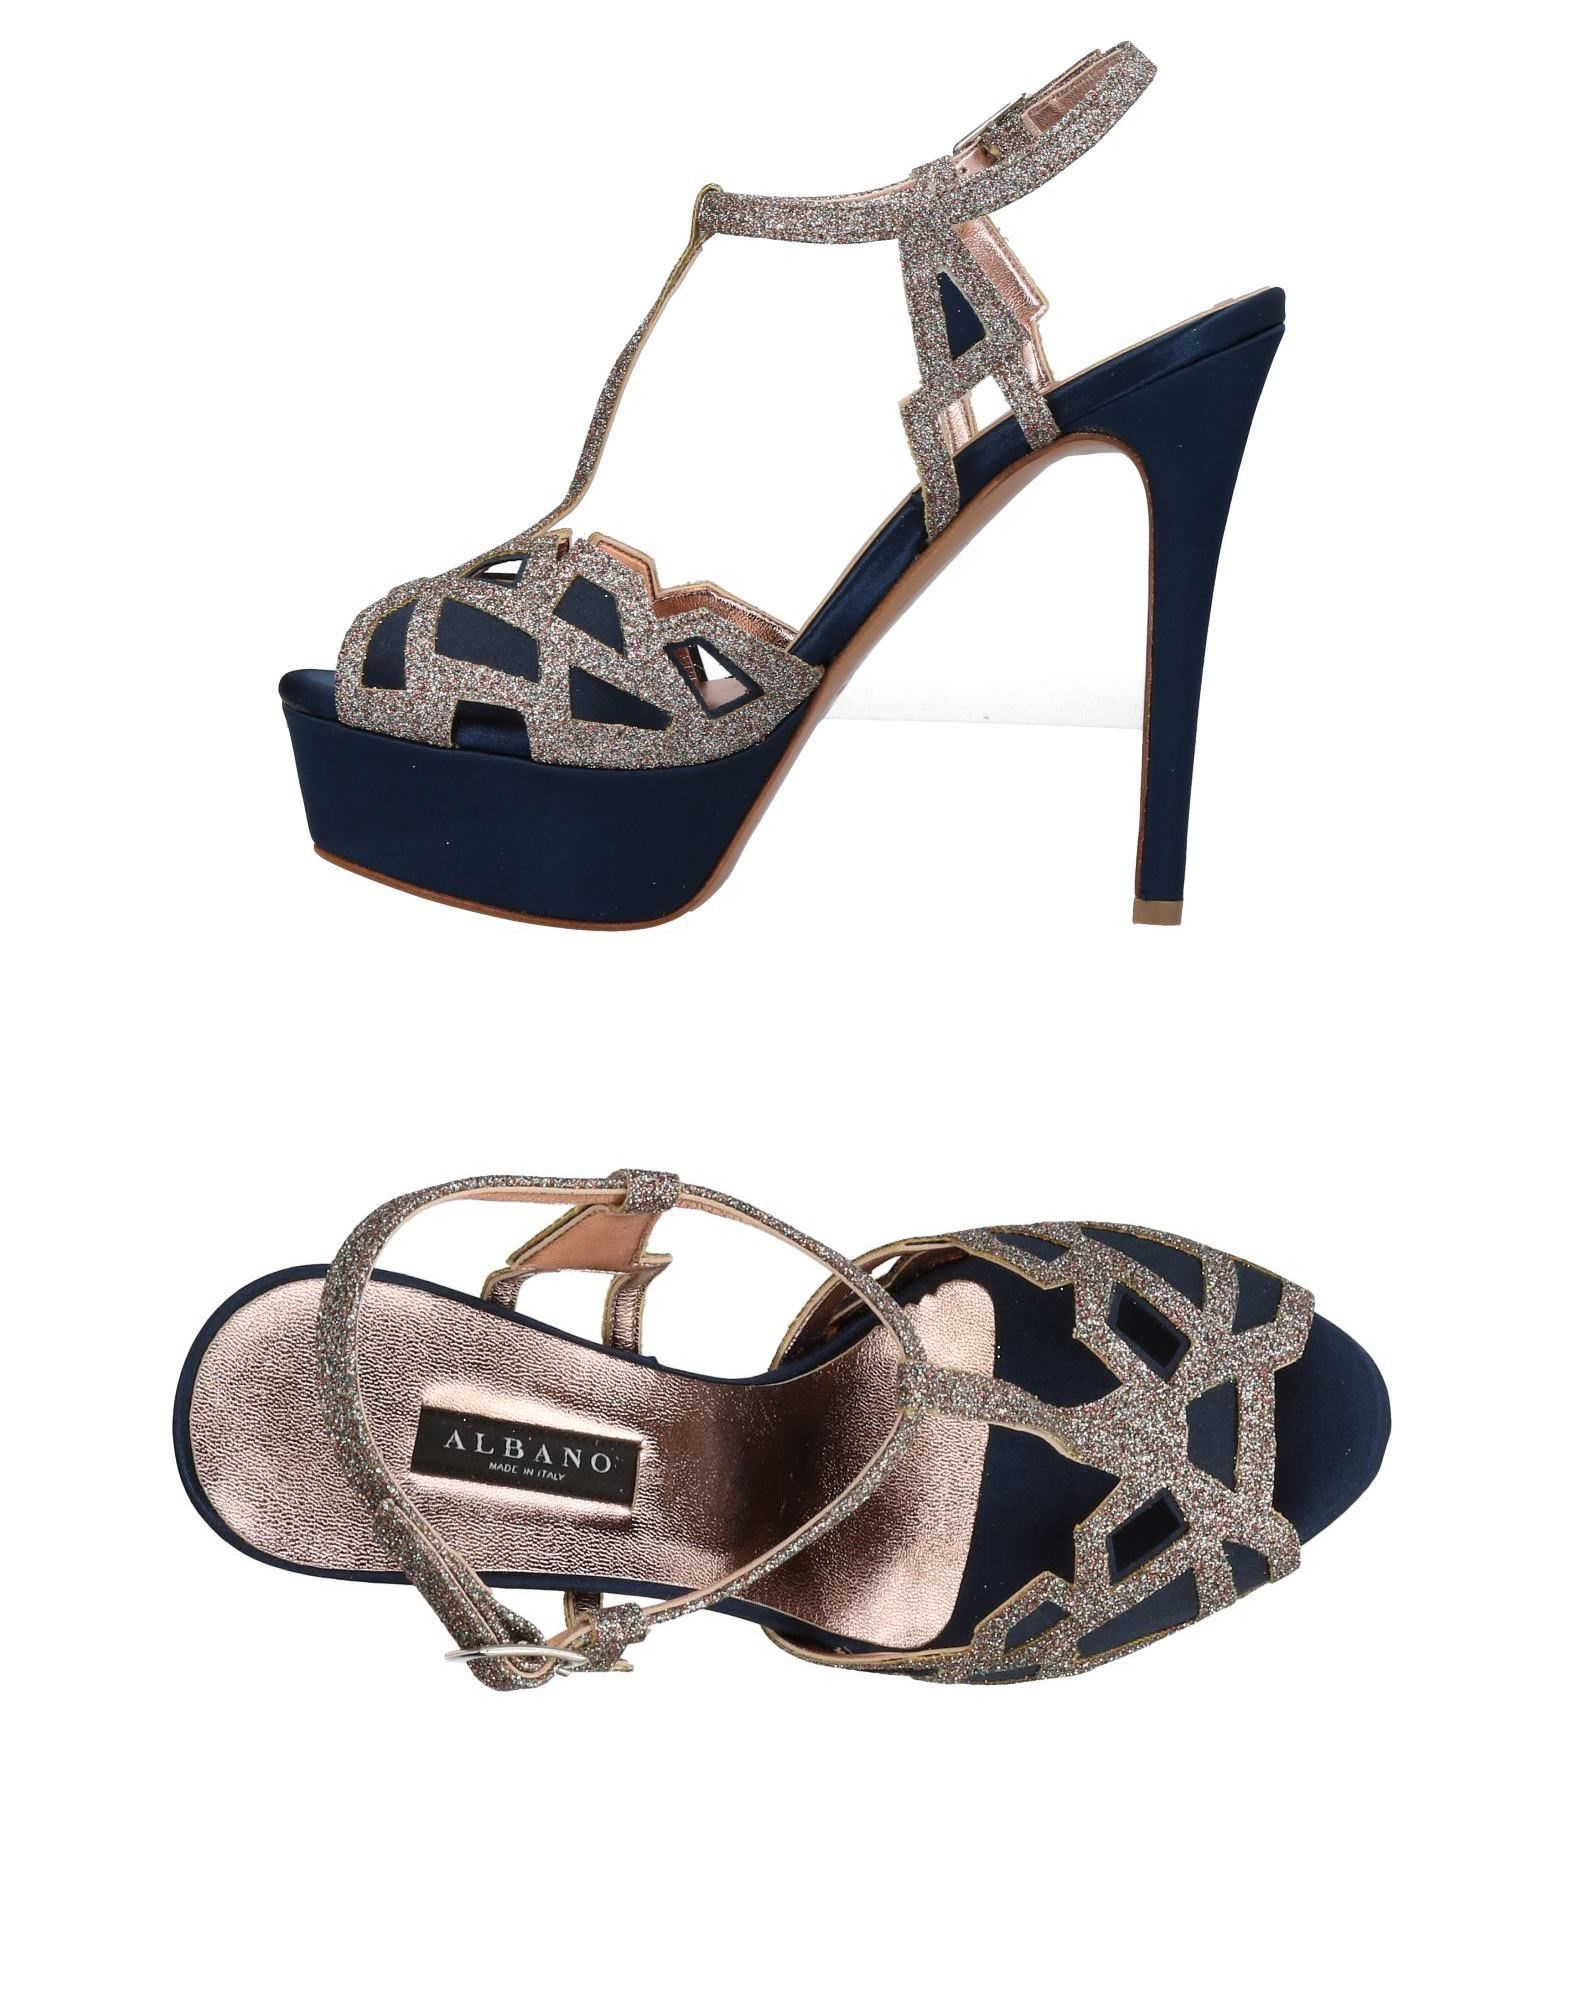 ALBANO . #albano #shoes # | Sandals, Shoes sandals, Stiletto